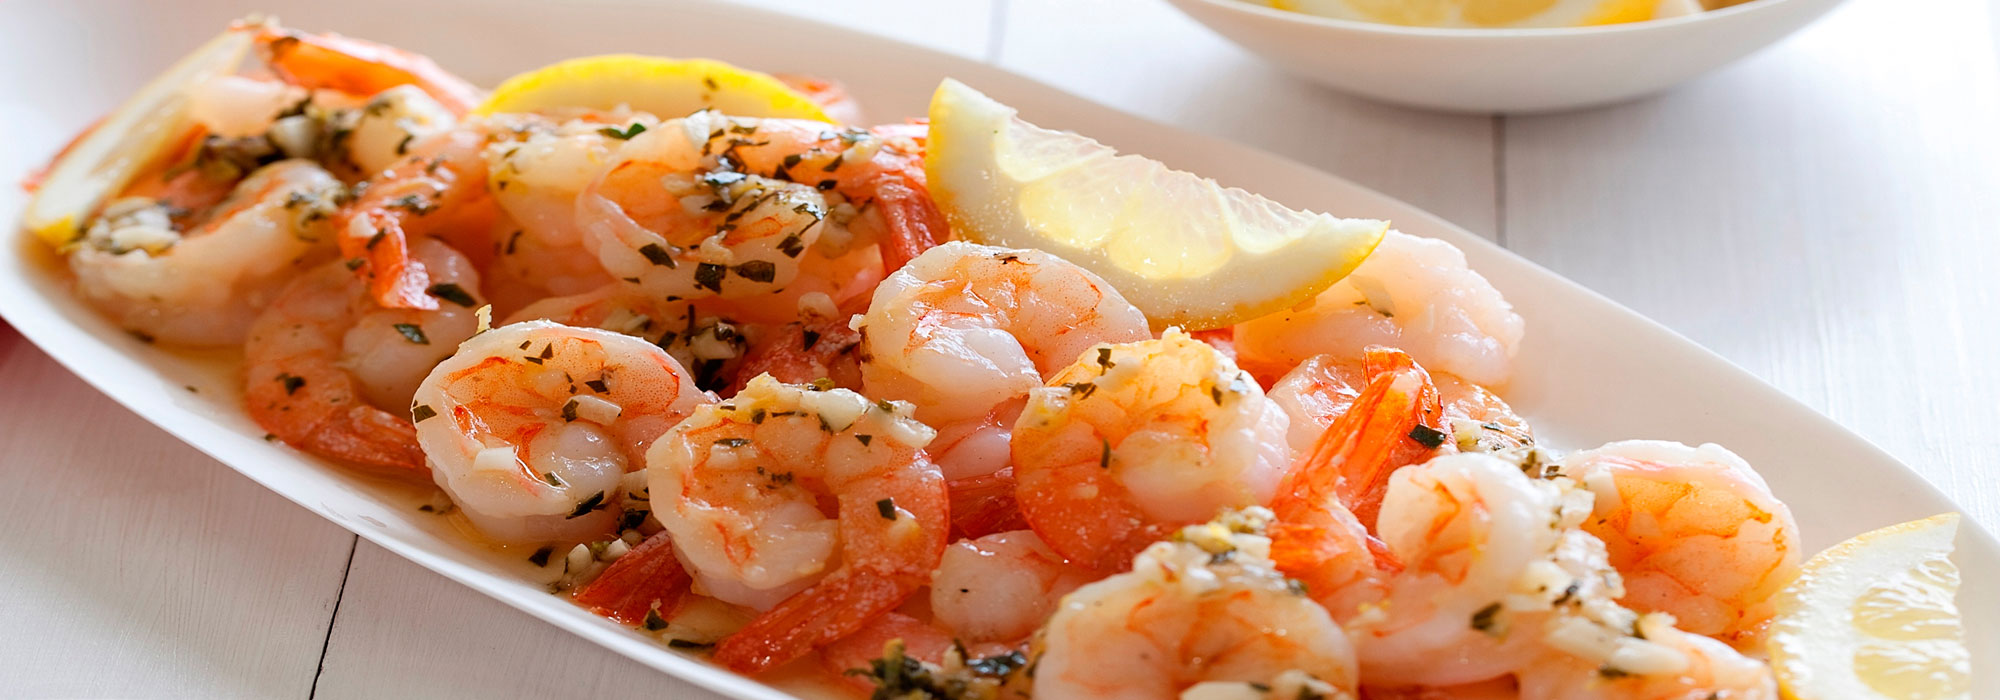 COASTAL LIGHT FOODSTUFF Trading LLC : Seafood dubai,Frozen food uae